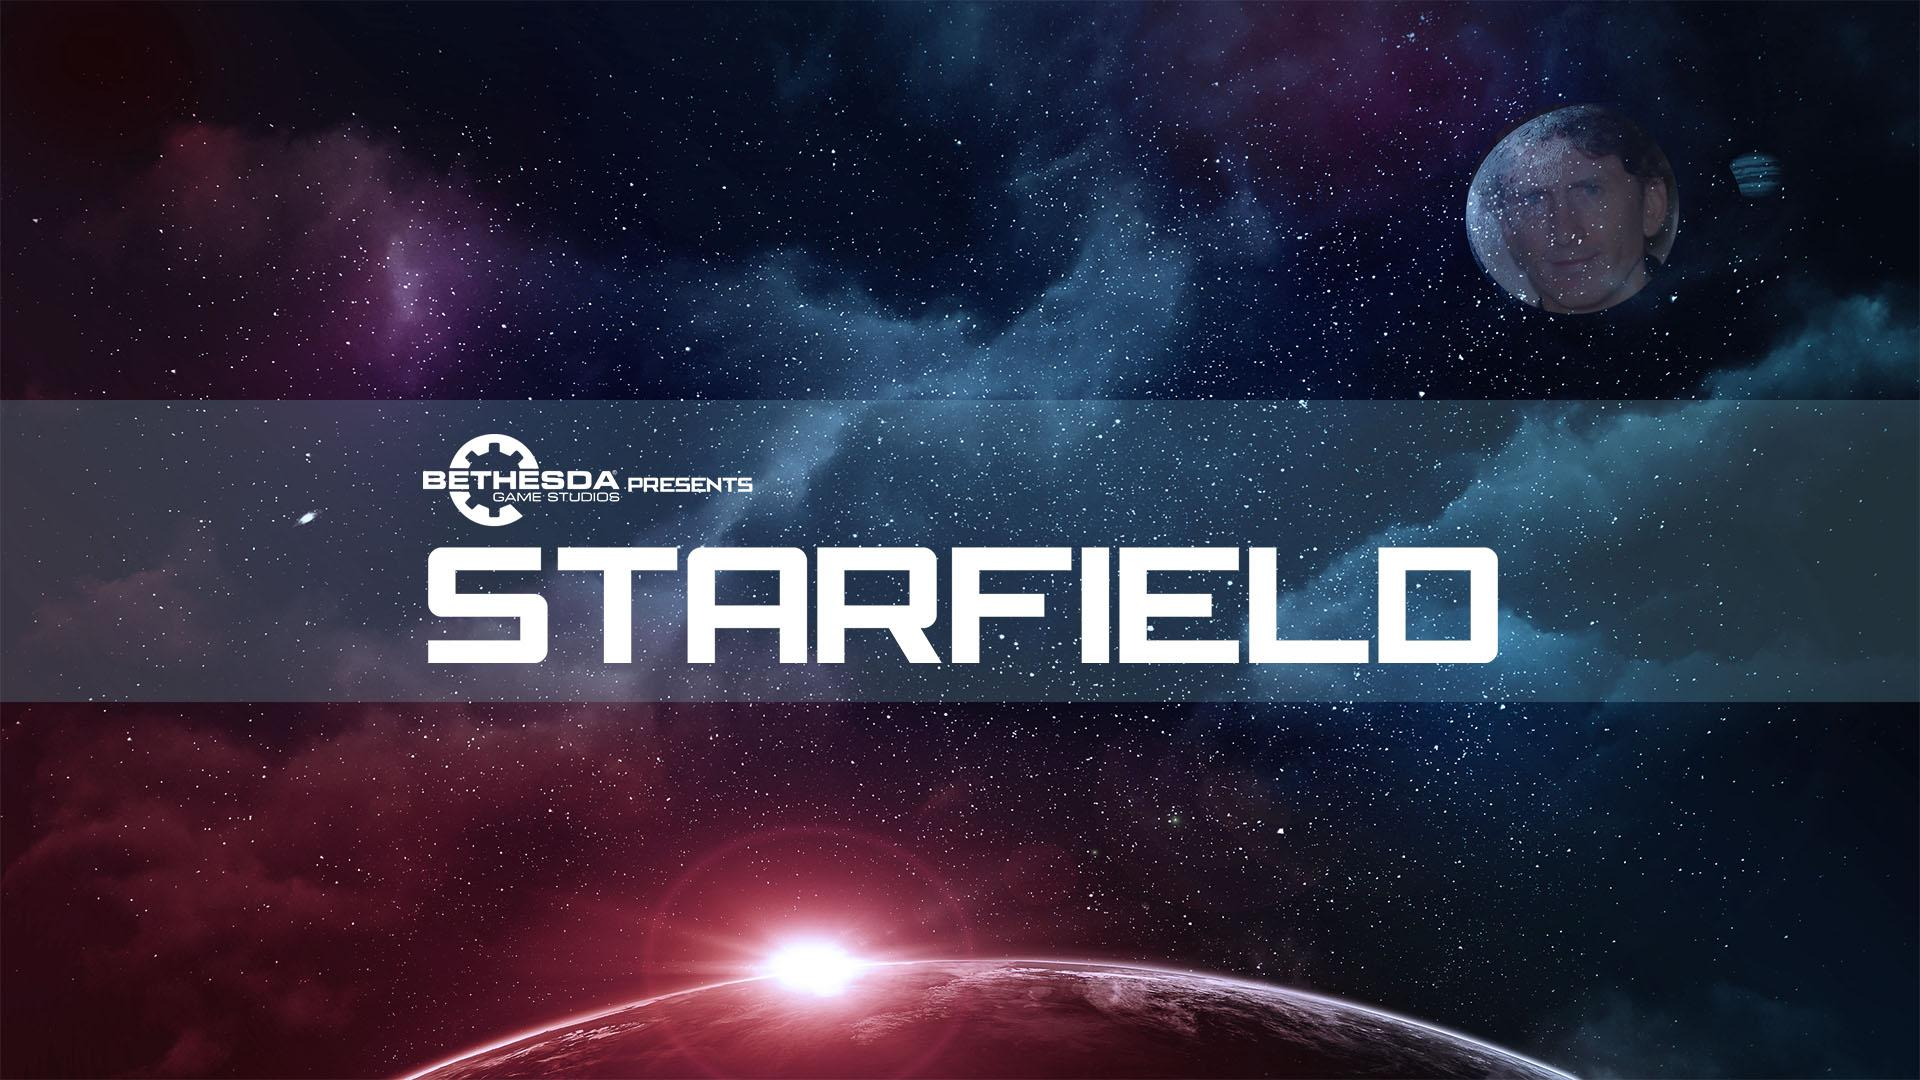 Bethesda Actually Announced The Elder Scrolls 6 - To Release After Starfield